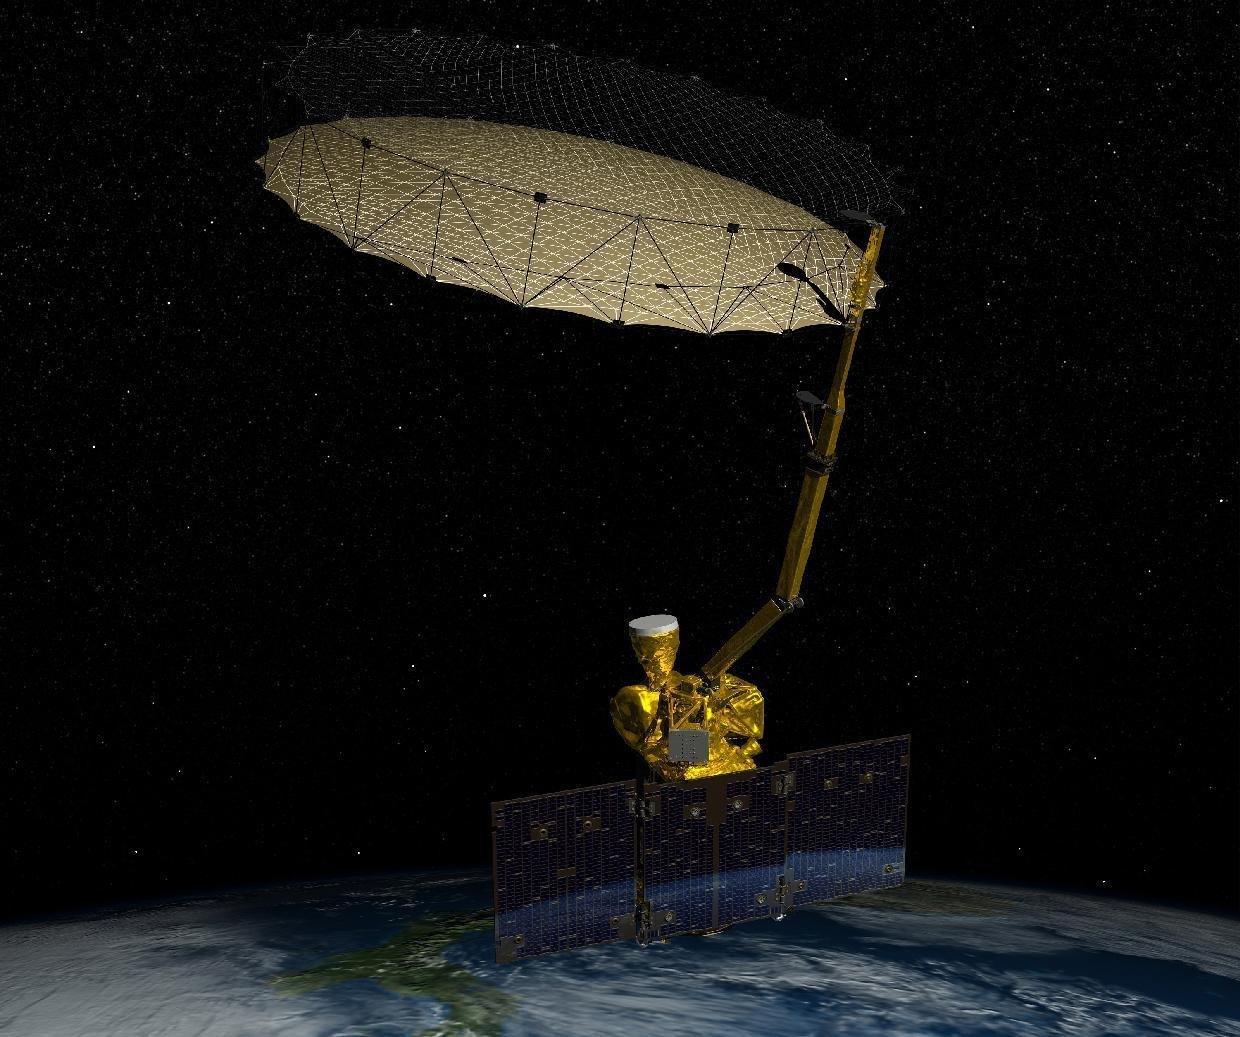 New NASA soil moisture satellite loses 1 science instrument